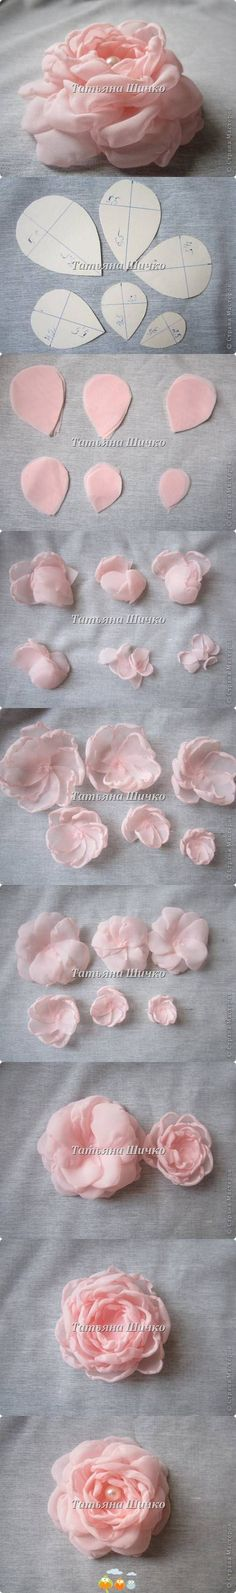 62 Ideas Flowers Diy Fabric No Sew Baby Headbands For 2019 Nylon Flowers, Cloth Flowers, Diy Flowers, Fabric Flowers, Paper Flowers, Rose Flowers, Organza Flowers, Flower Petals, Ribbon Art